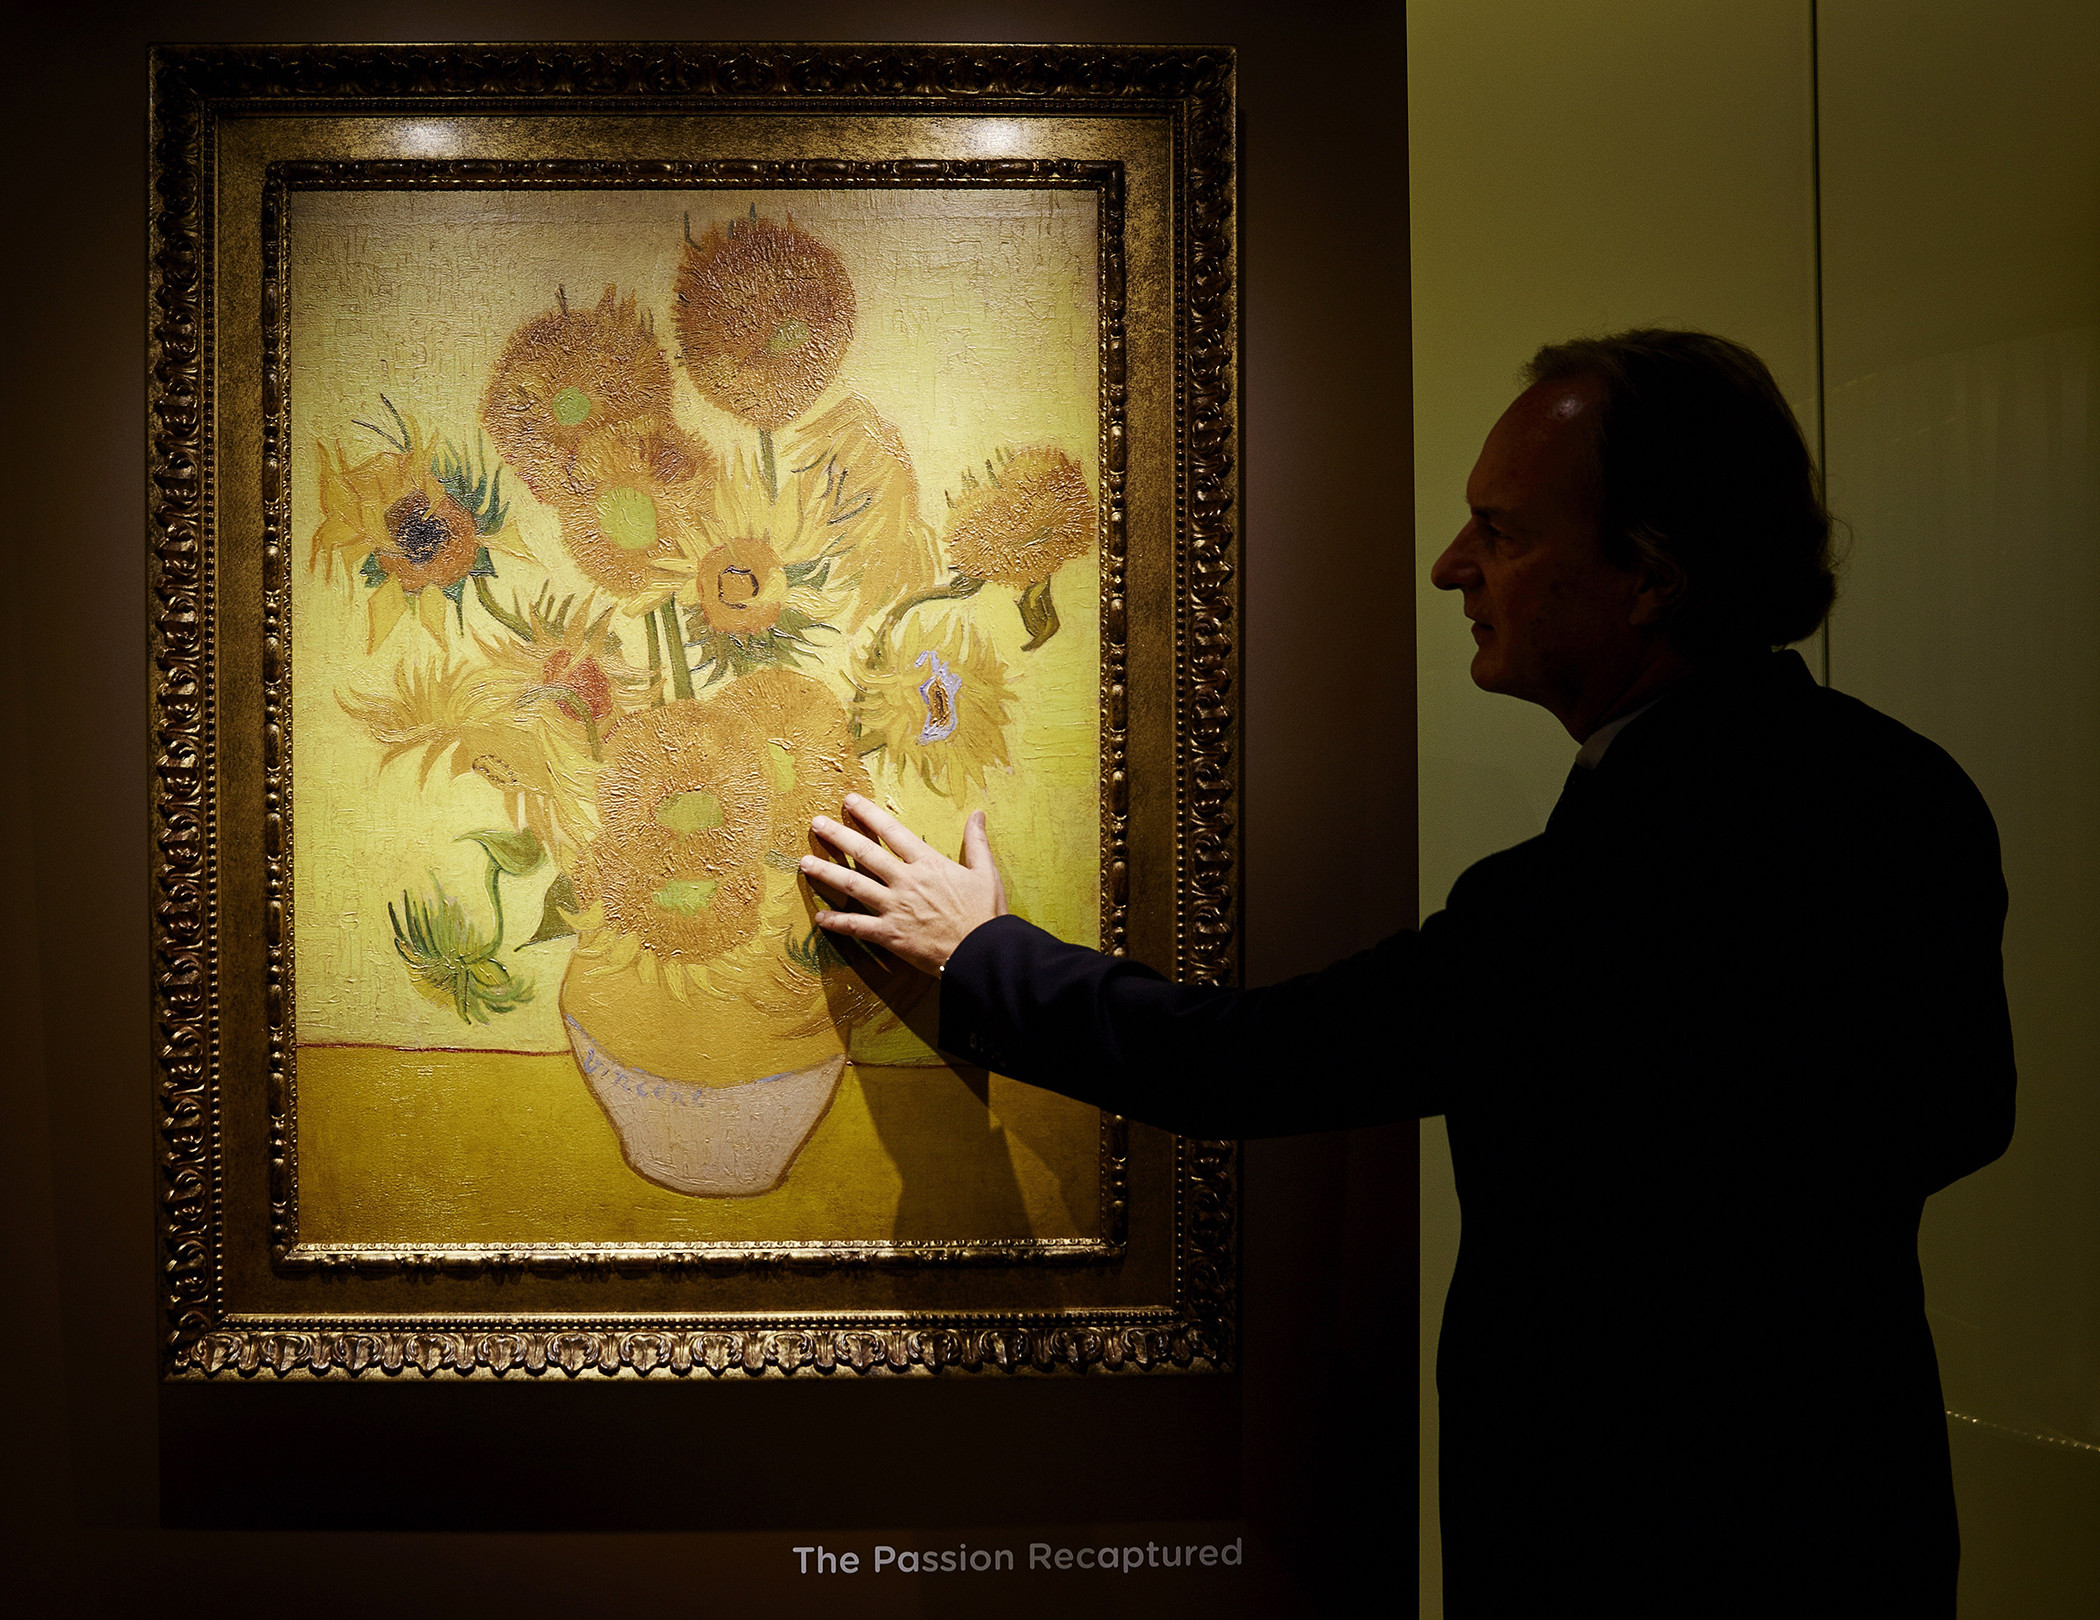 A man looks at a 'relievo', a three-dimensional reproduction of the of Vincent van Gogh's The Sunflowers on December 12, 2013 in Schiphol Amsterdam Airport.